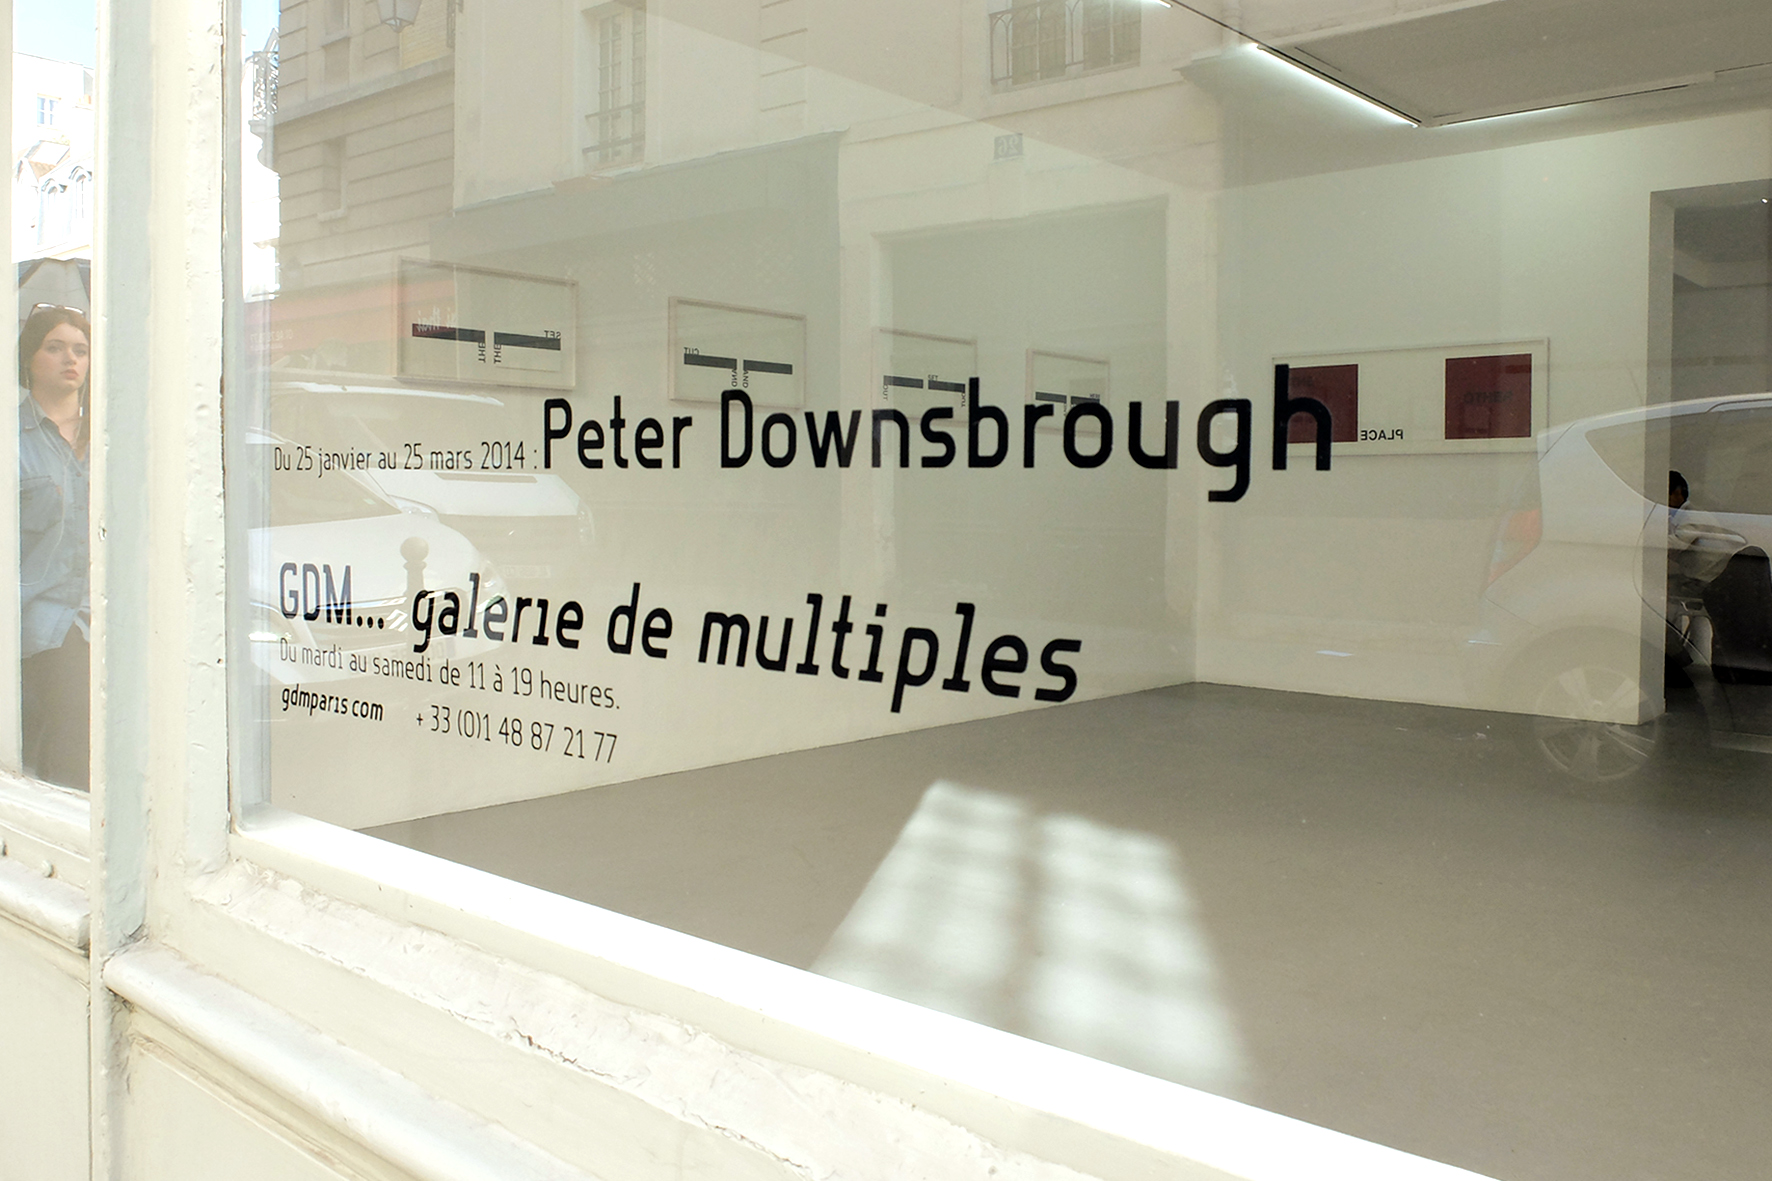 Peter Downsbrough